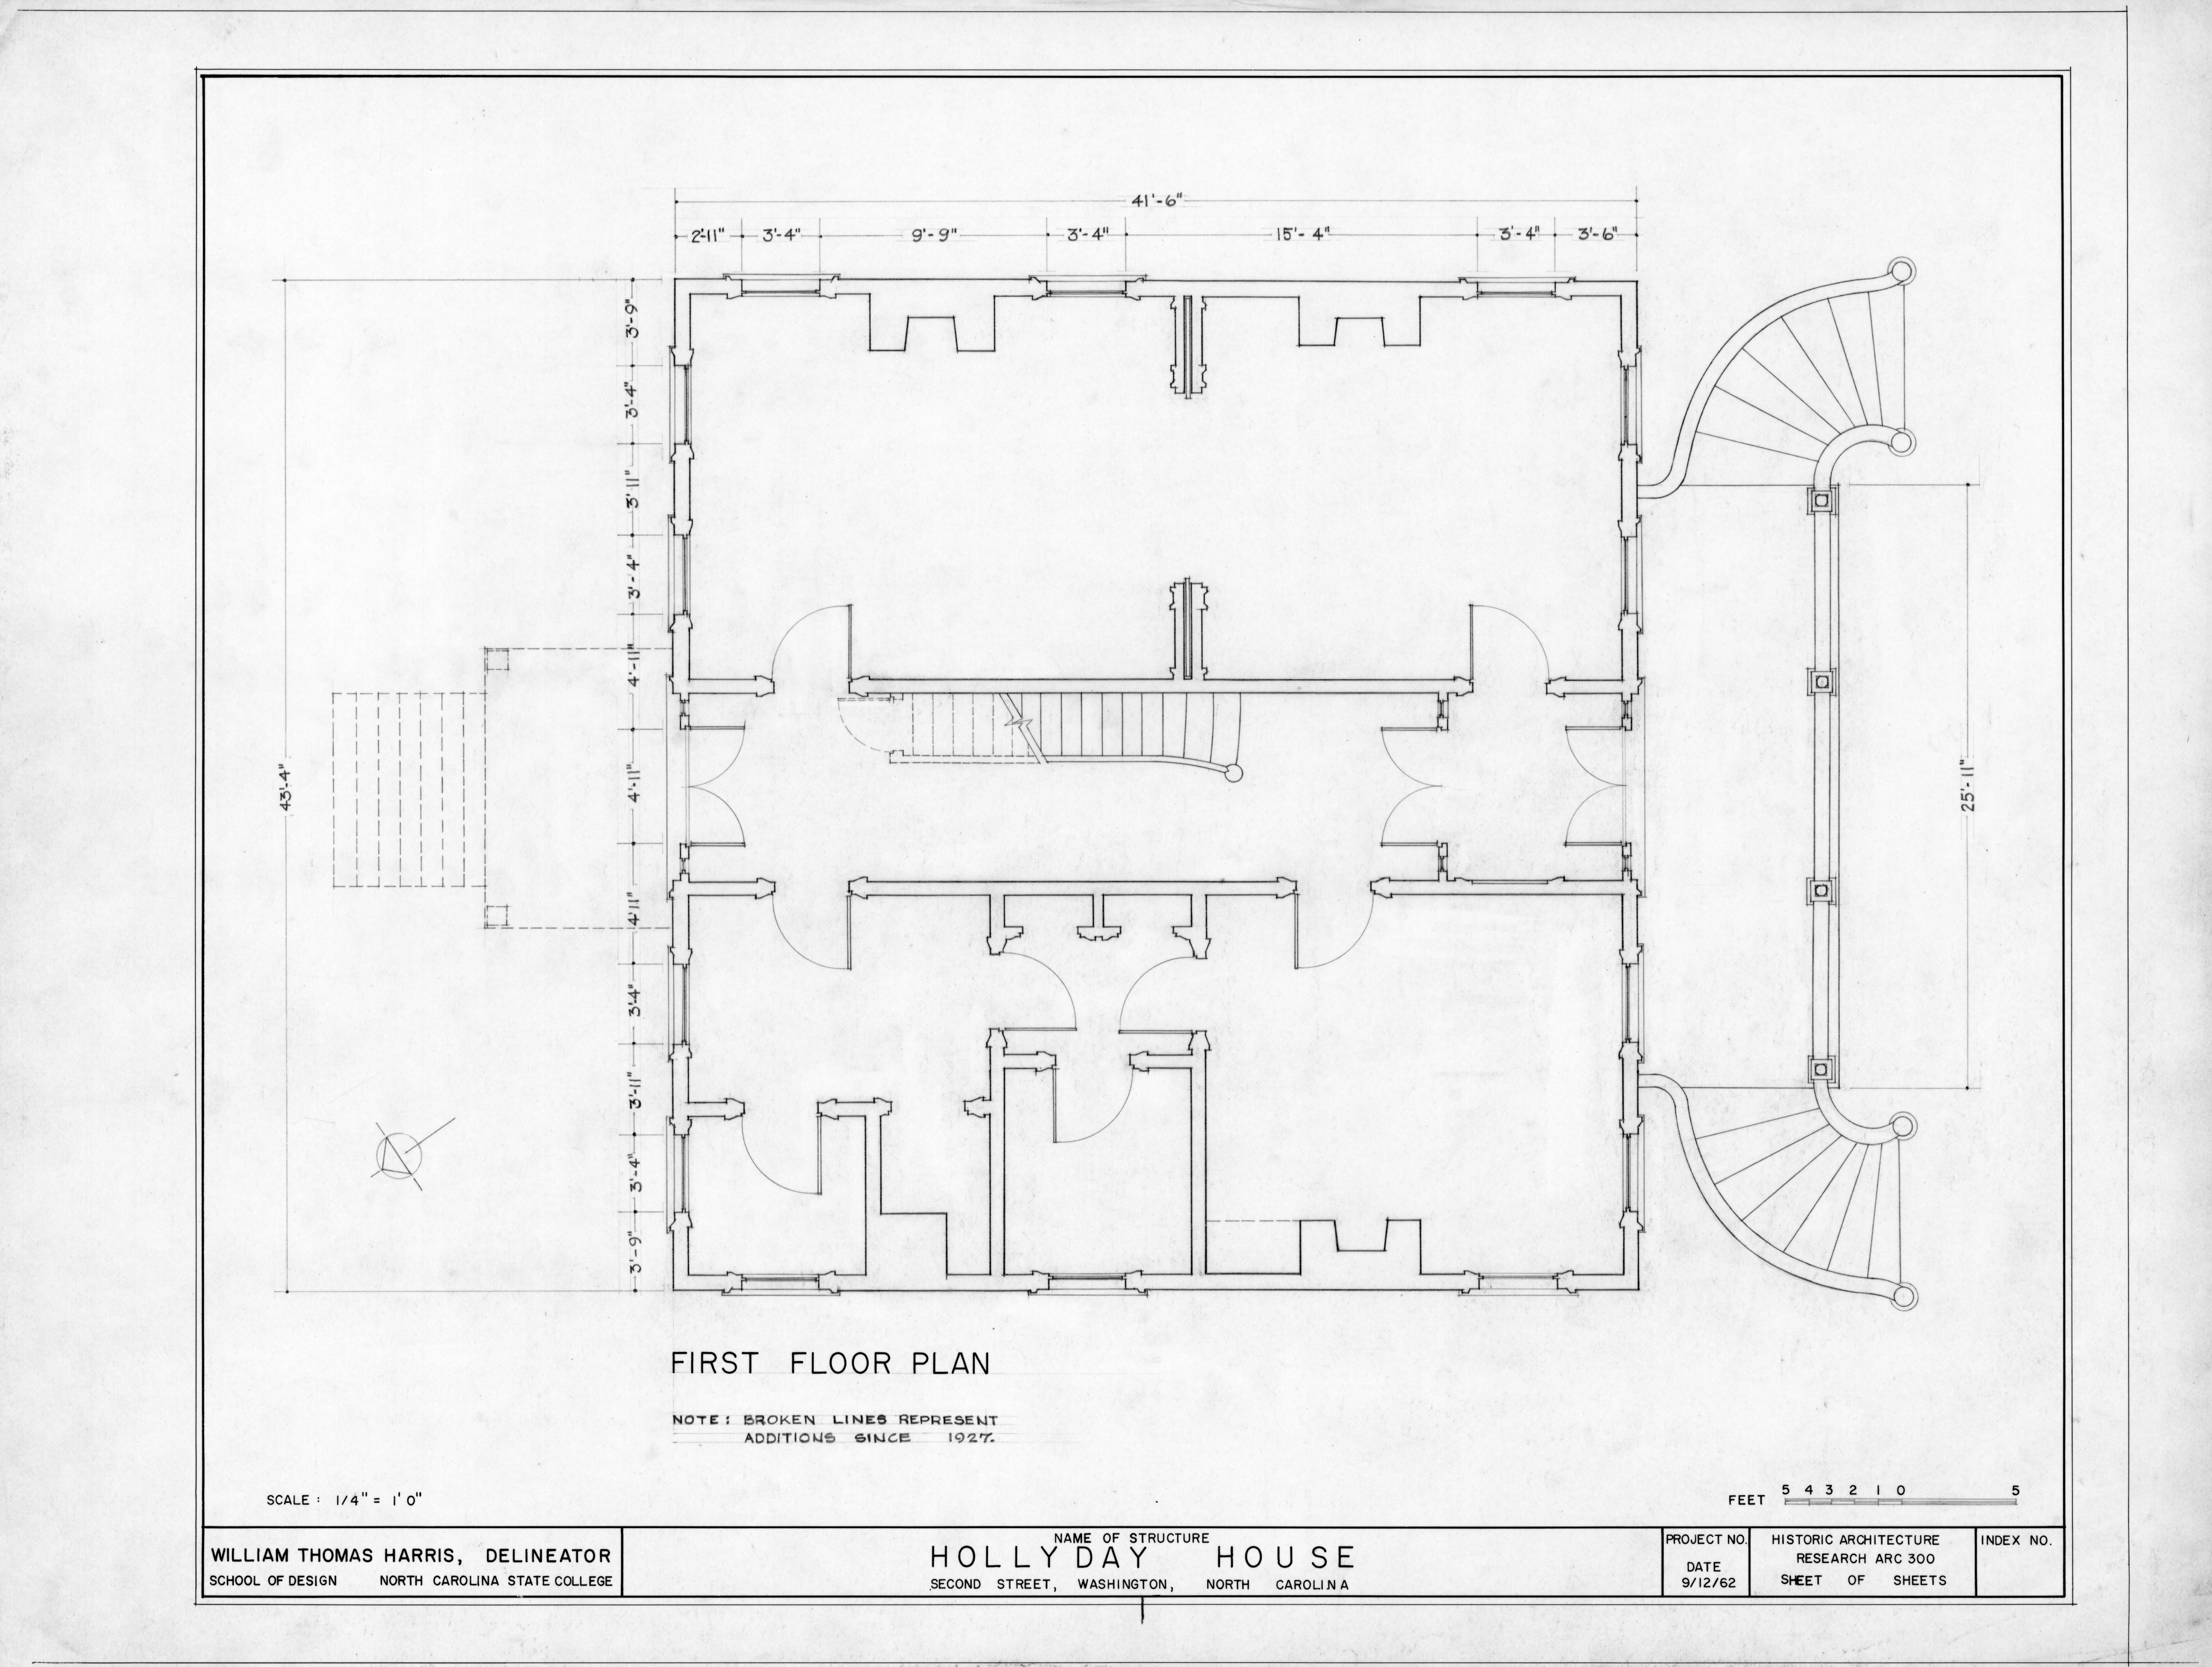 First Floor Plan Hollyday House Washington North